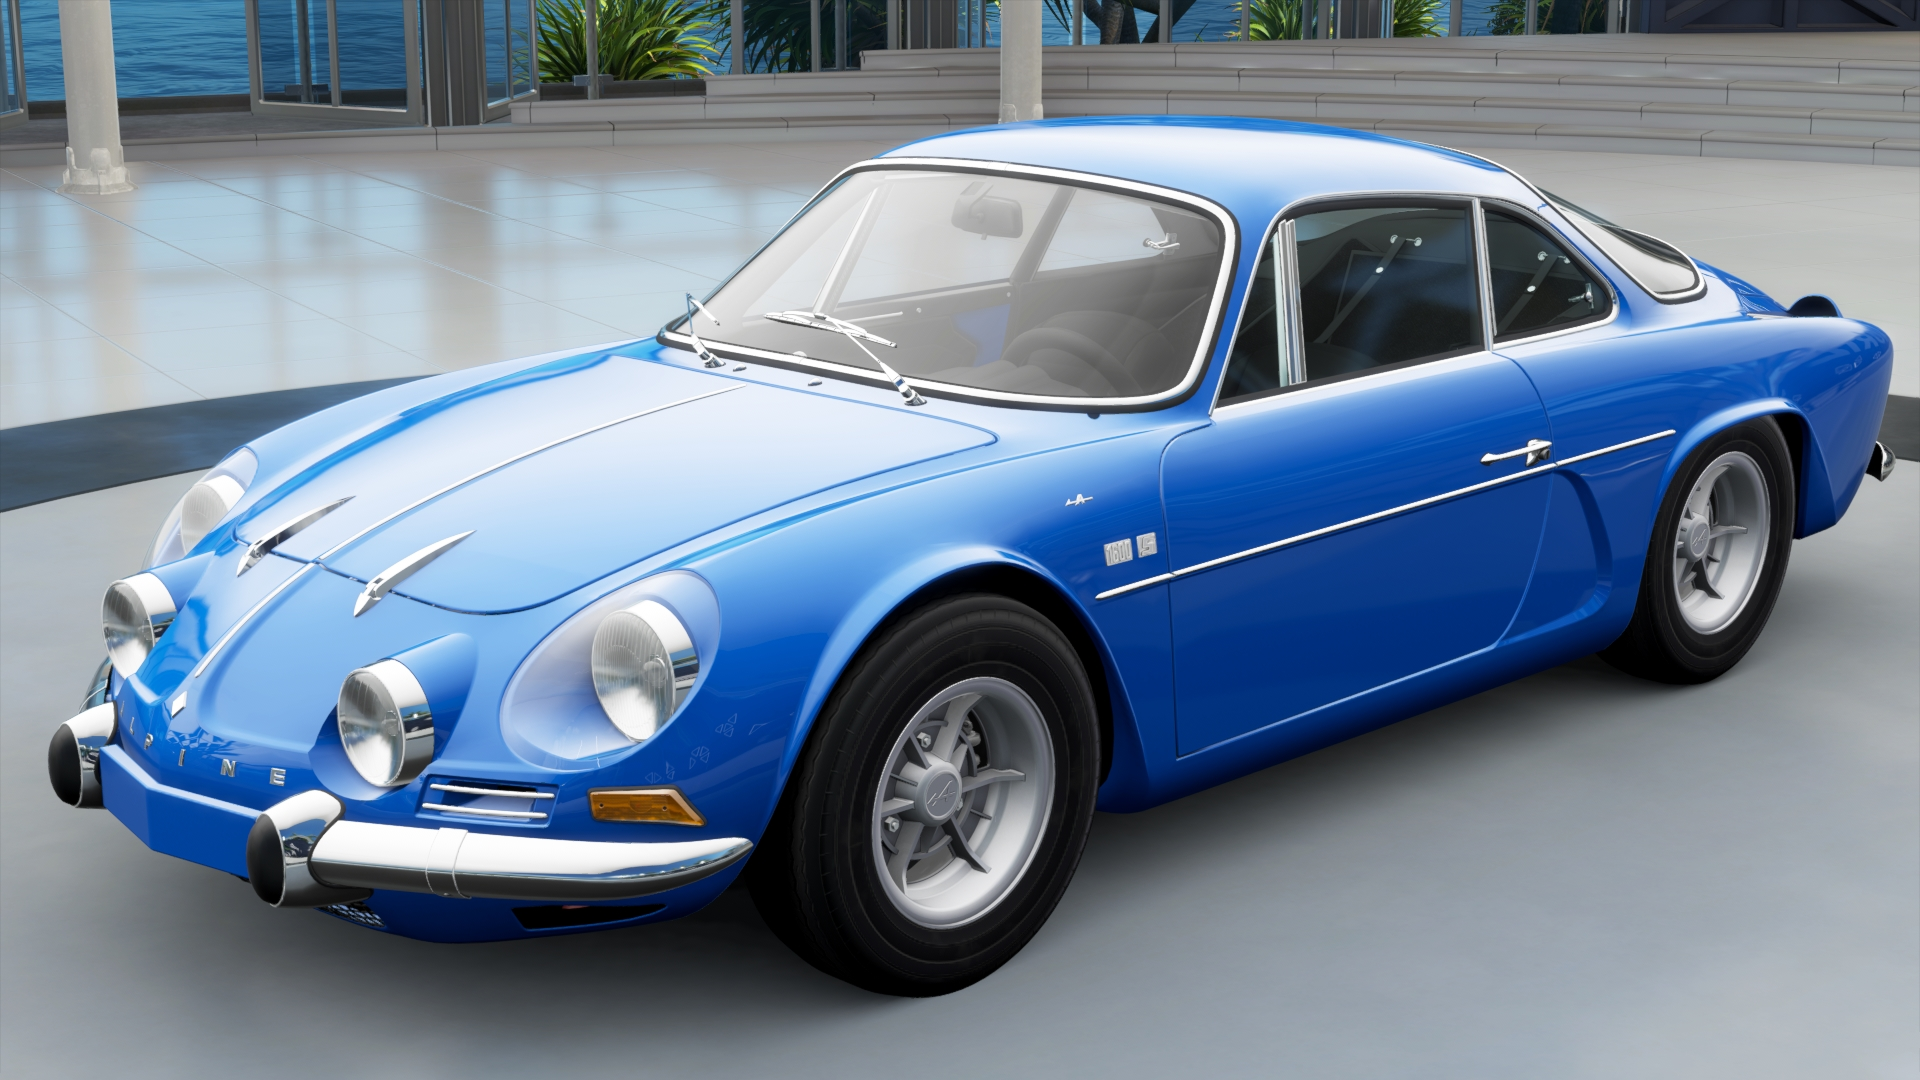 renault alpine a110 1600s forza motorsport wiki fandom. Black Bedroom Furniture Sets. Home Design Ideas